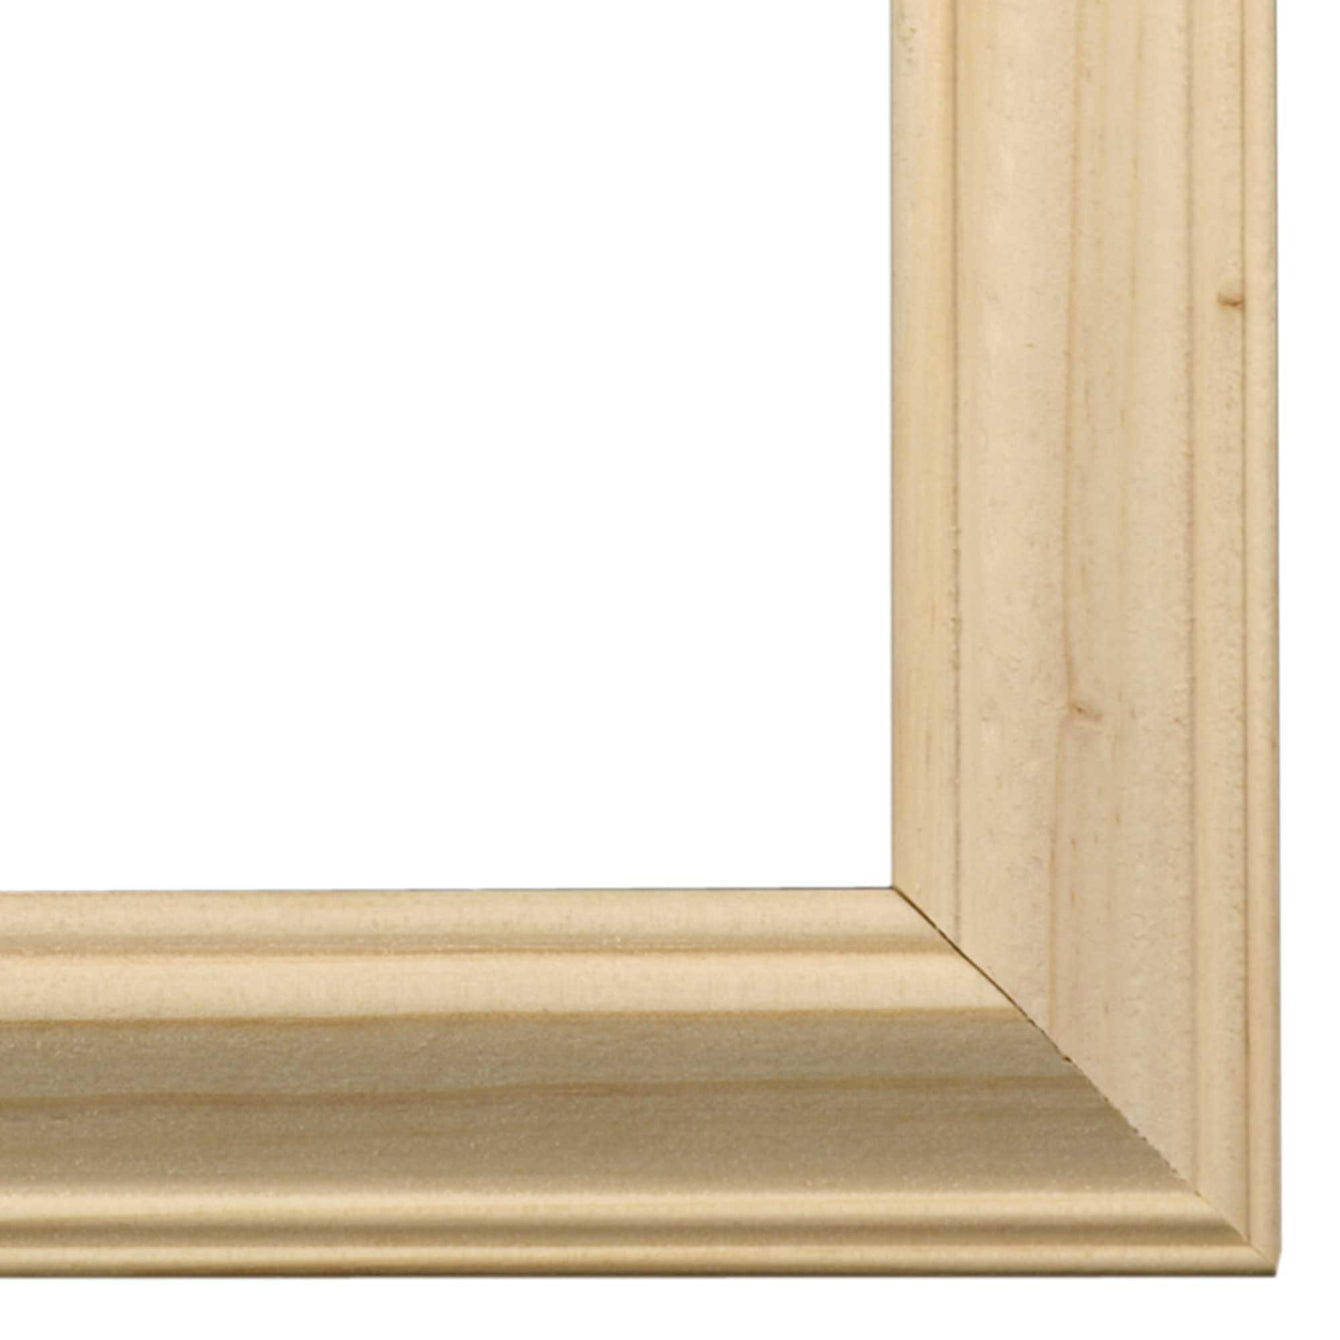 ElekTek Switch Surround Ovolo Frame Cover Finger Plate Pine Shades White Pine